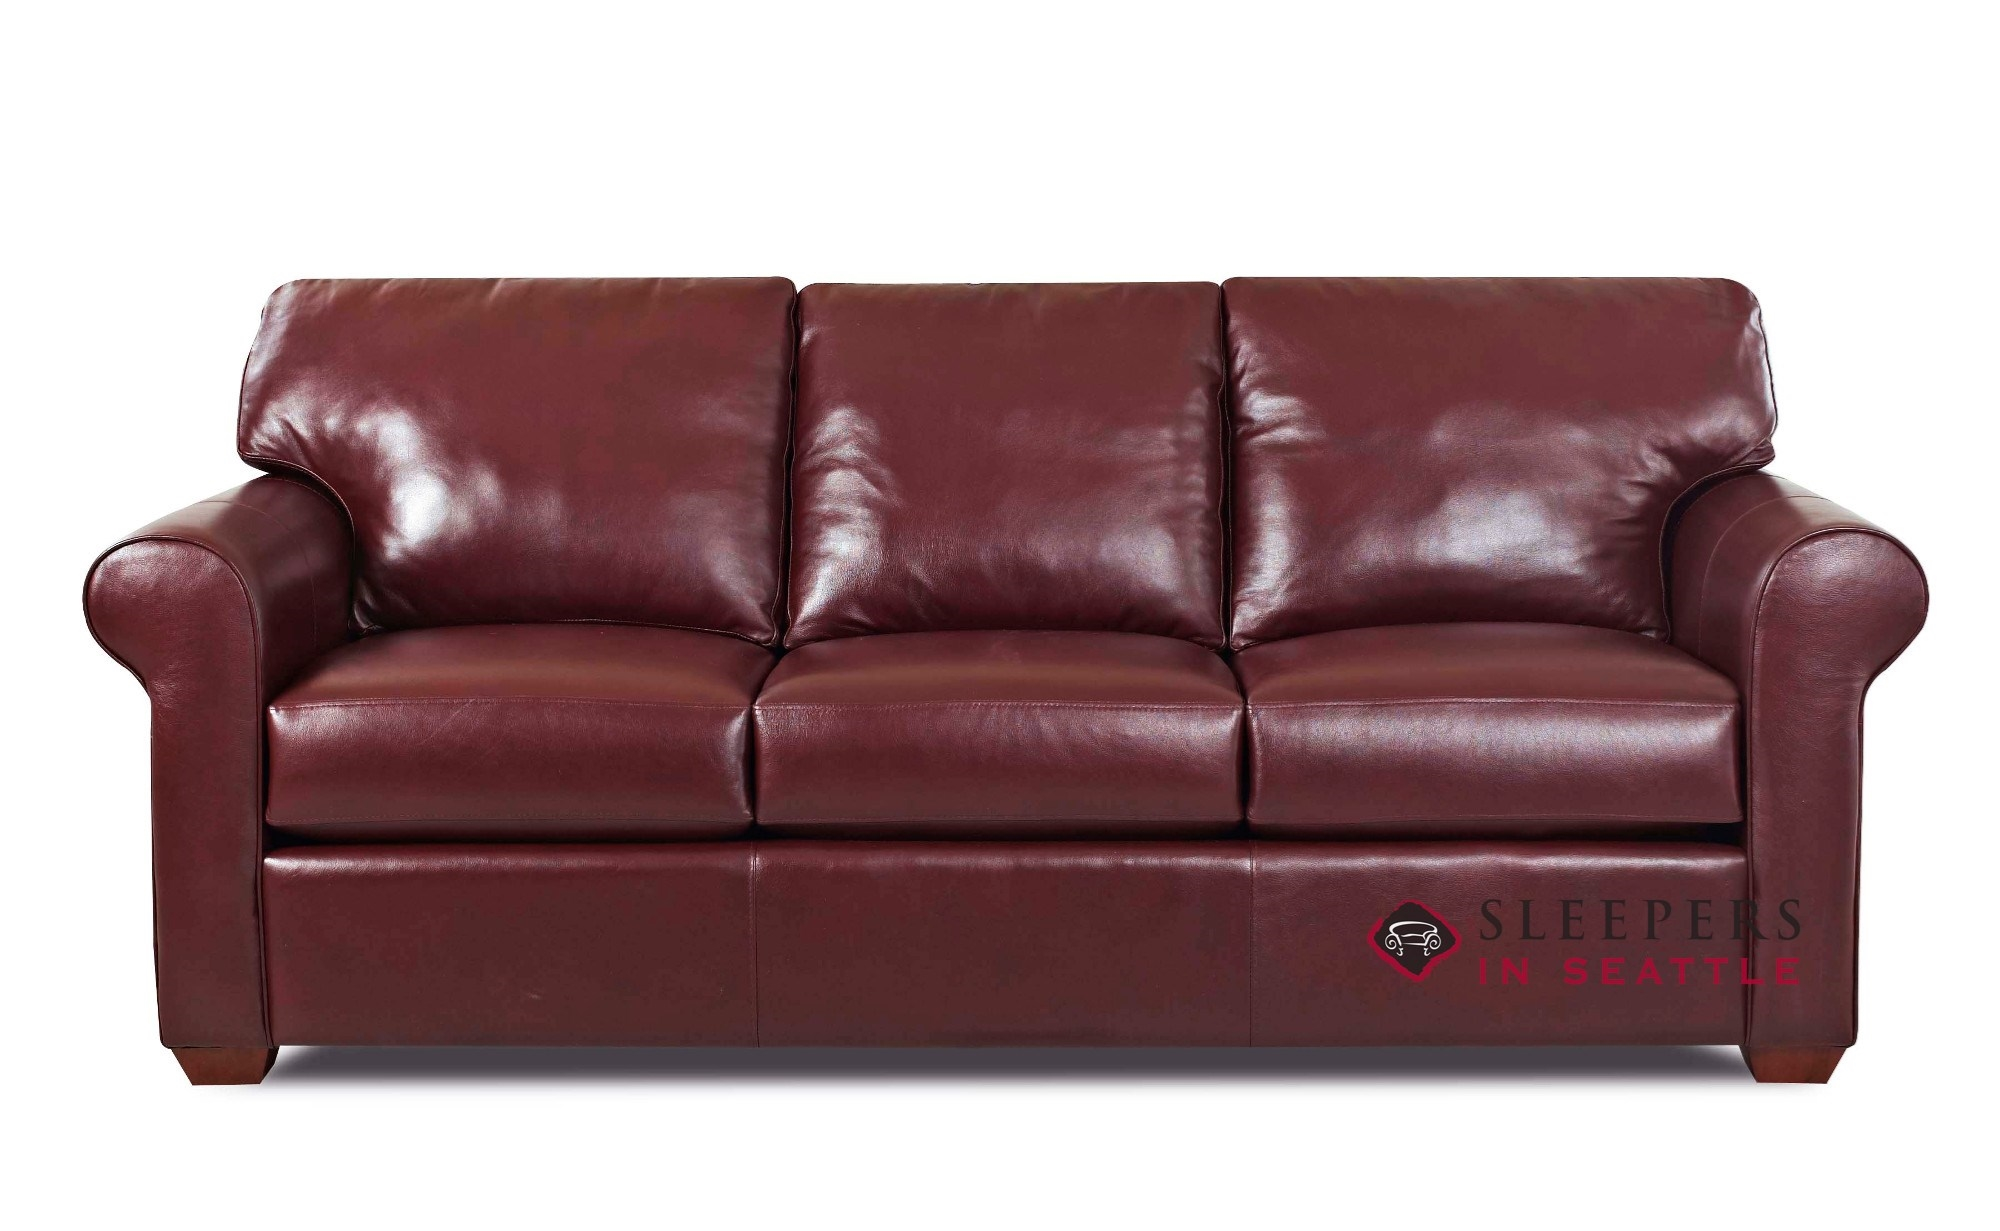 customize and personalize cancun queen leather sofa by savvy